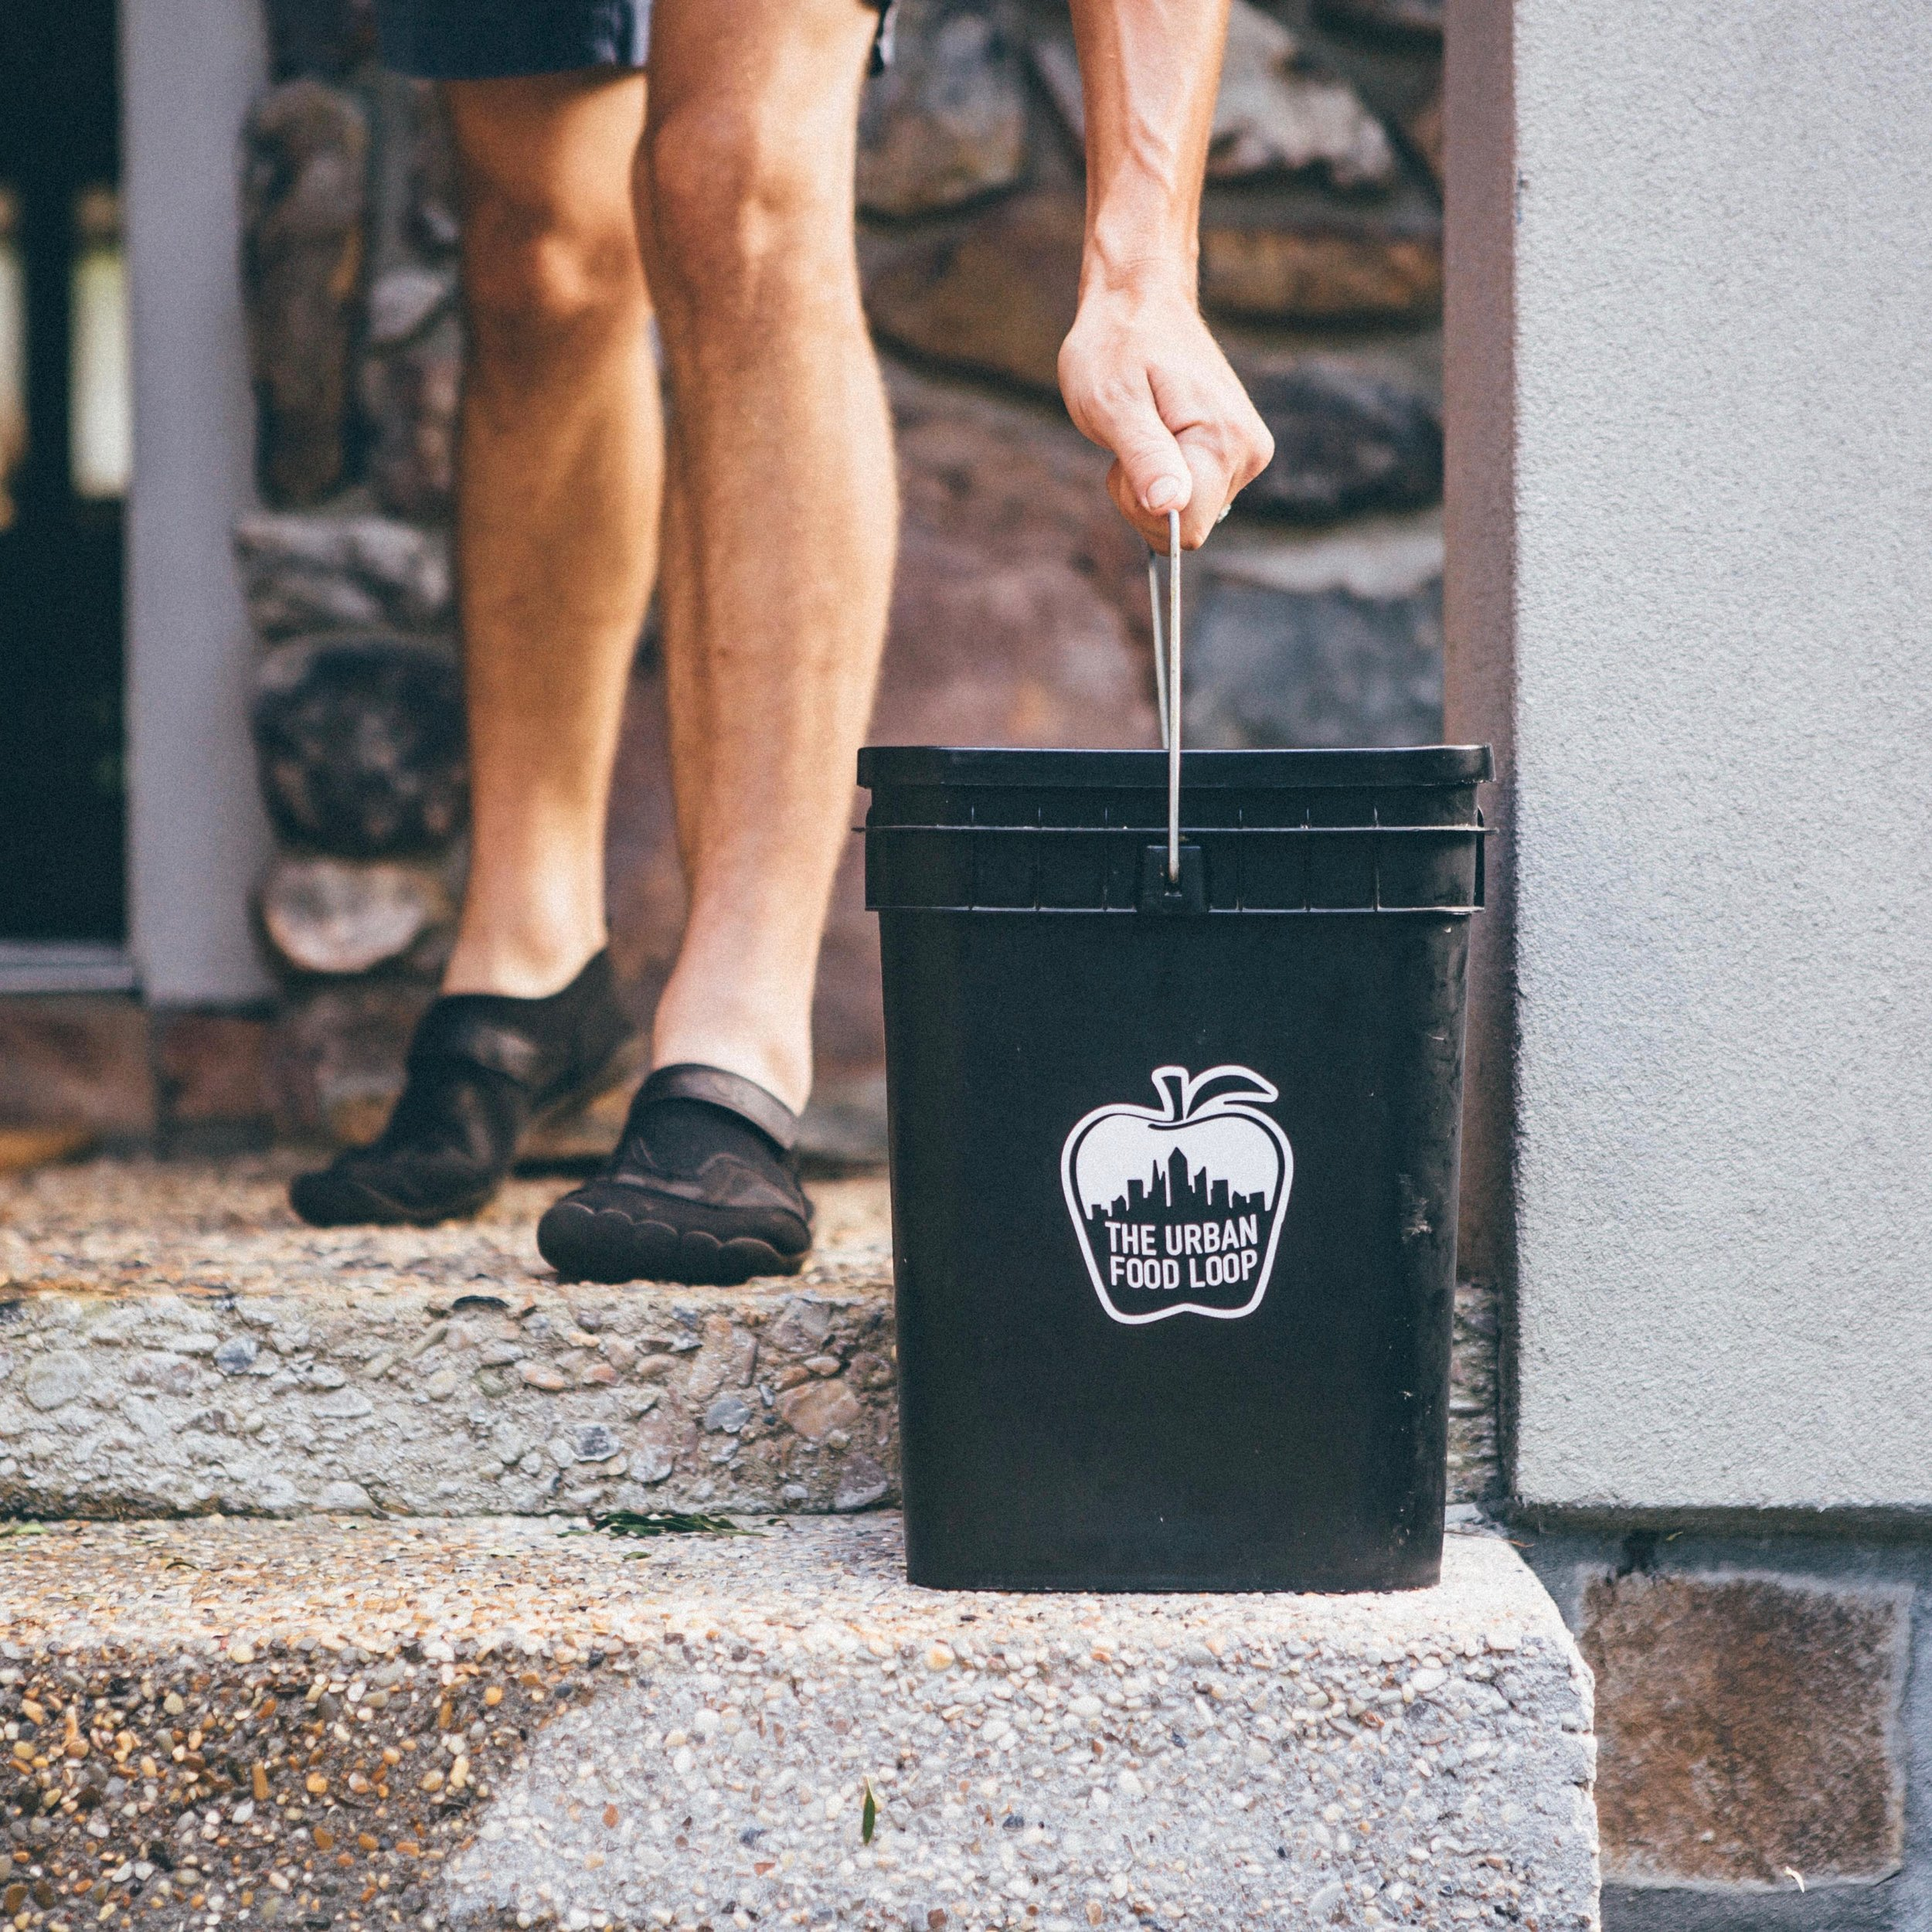 3. set it out - Set your outdoor bin out on your porch every Tuesday for pickup and let us swap it out for a clean one.